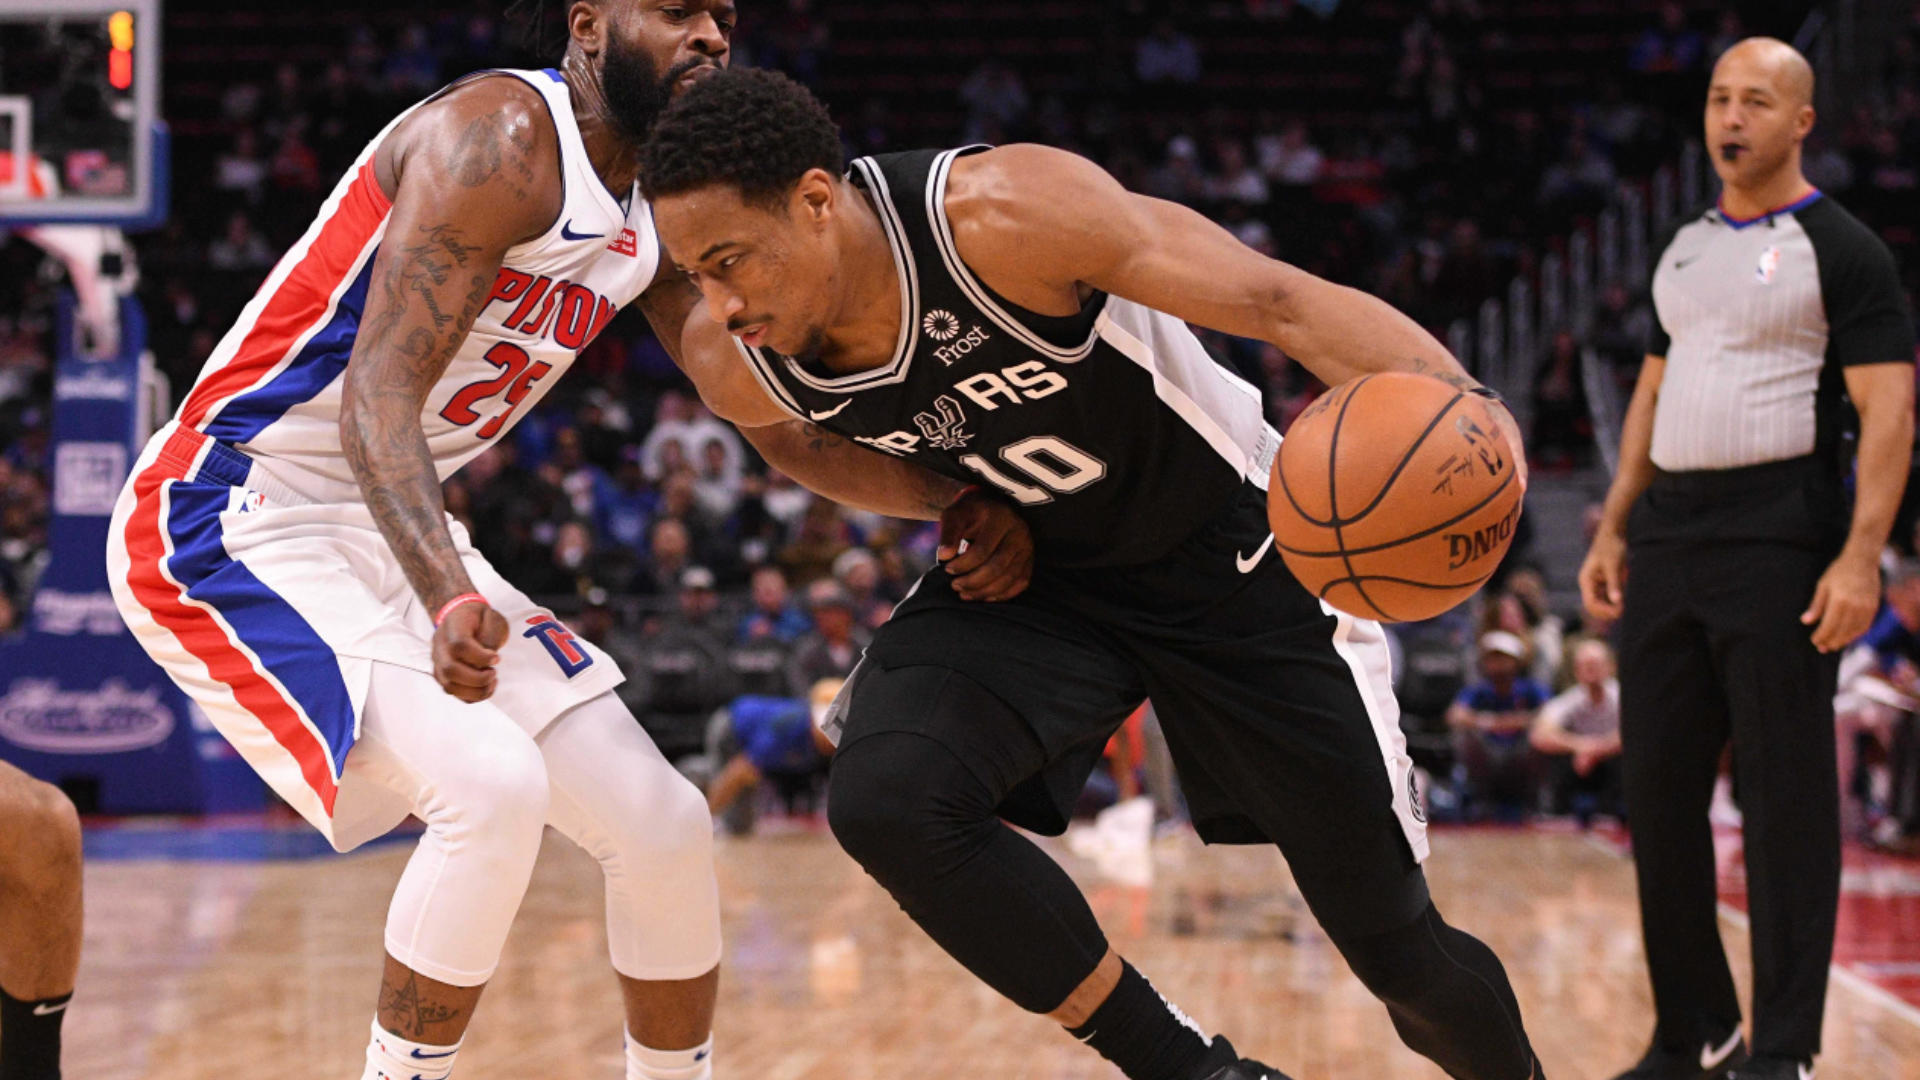 Spurs vs. Raptors: DeMar DeRozan's disastrous final moments spoil otherwise warm homecoming in Toronto